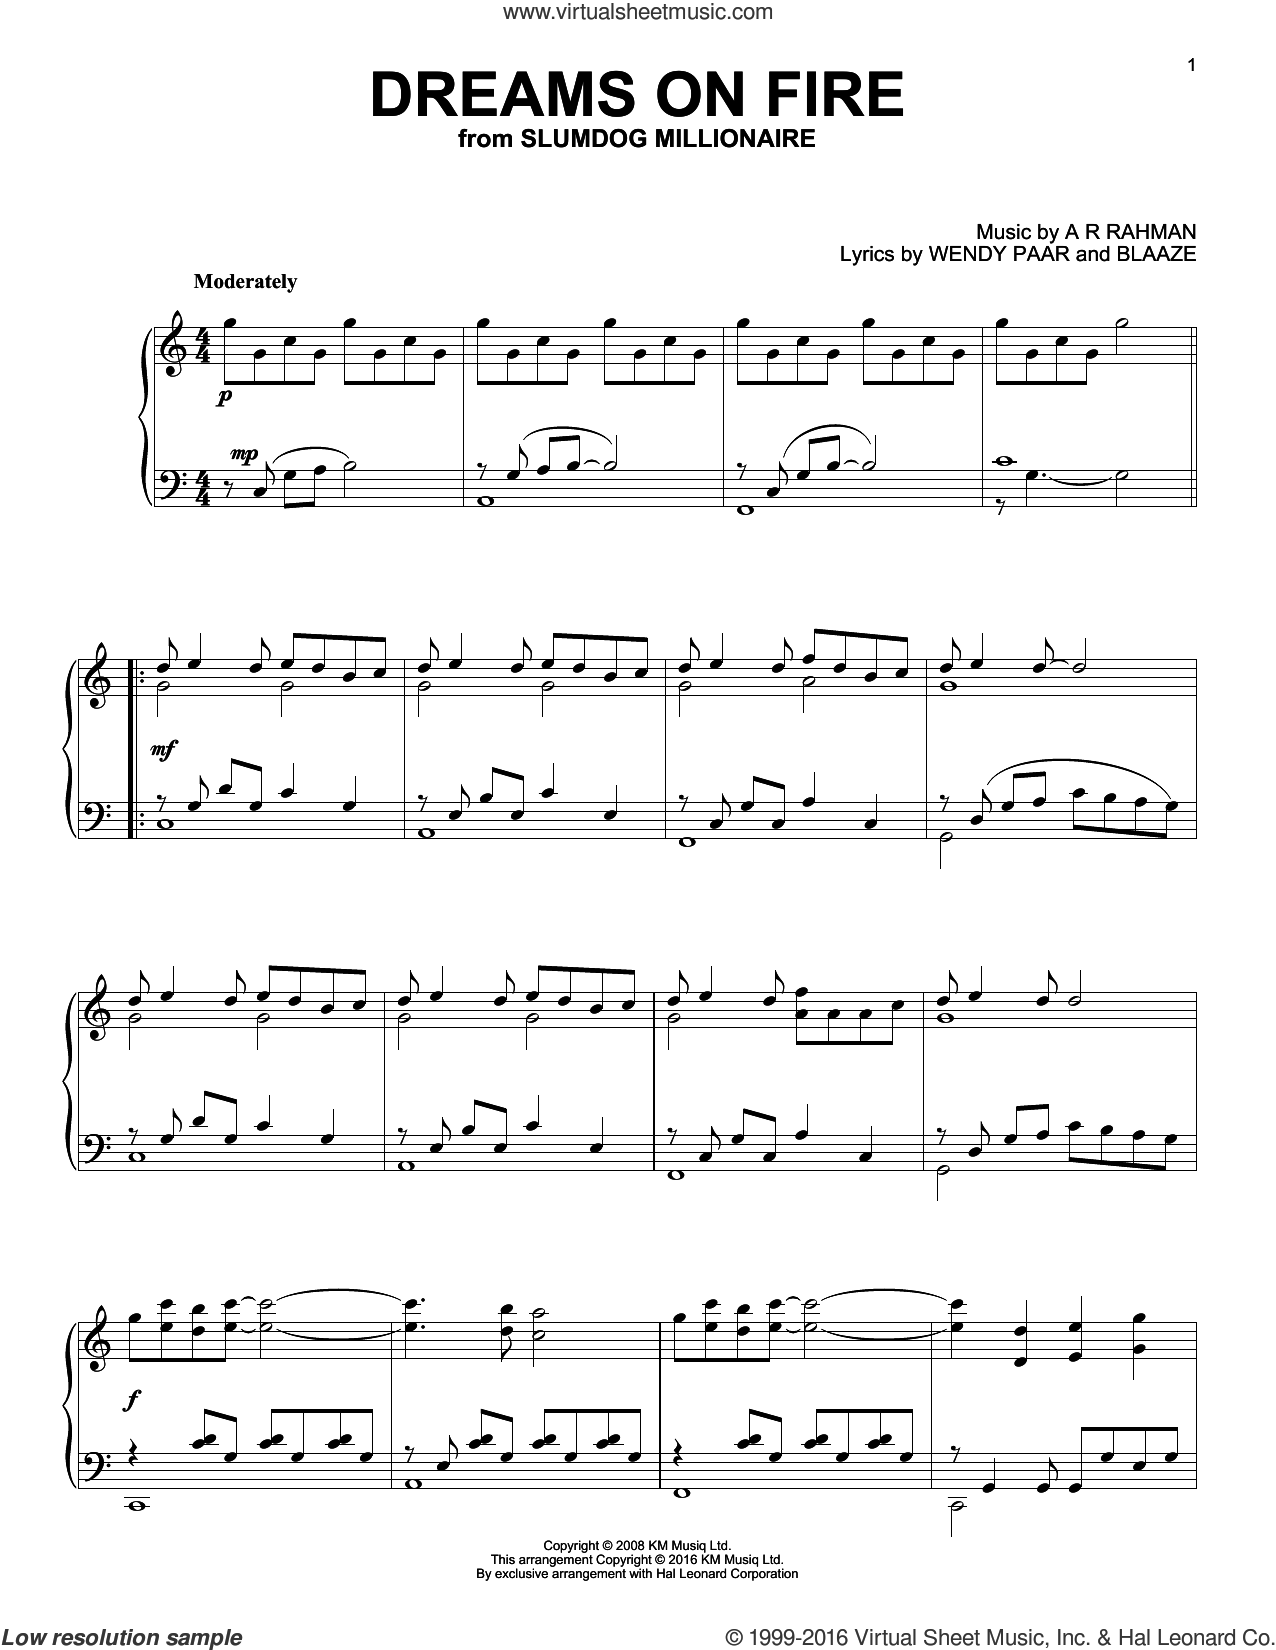 Dreams On Fire sheet music for piano solo by A.R. Rahman, BlaaZe and Wendy Paar, intermediate skill level